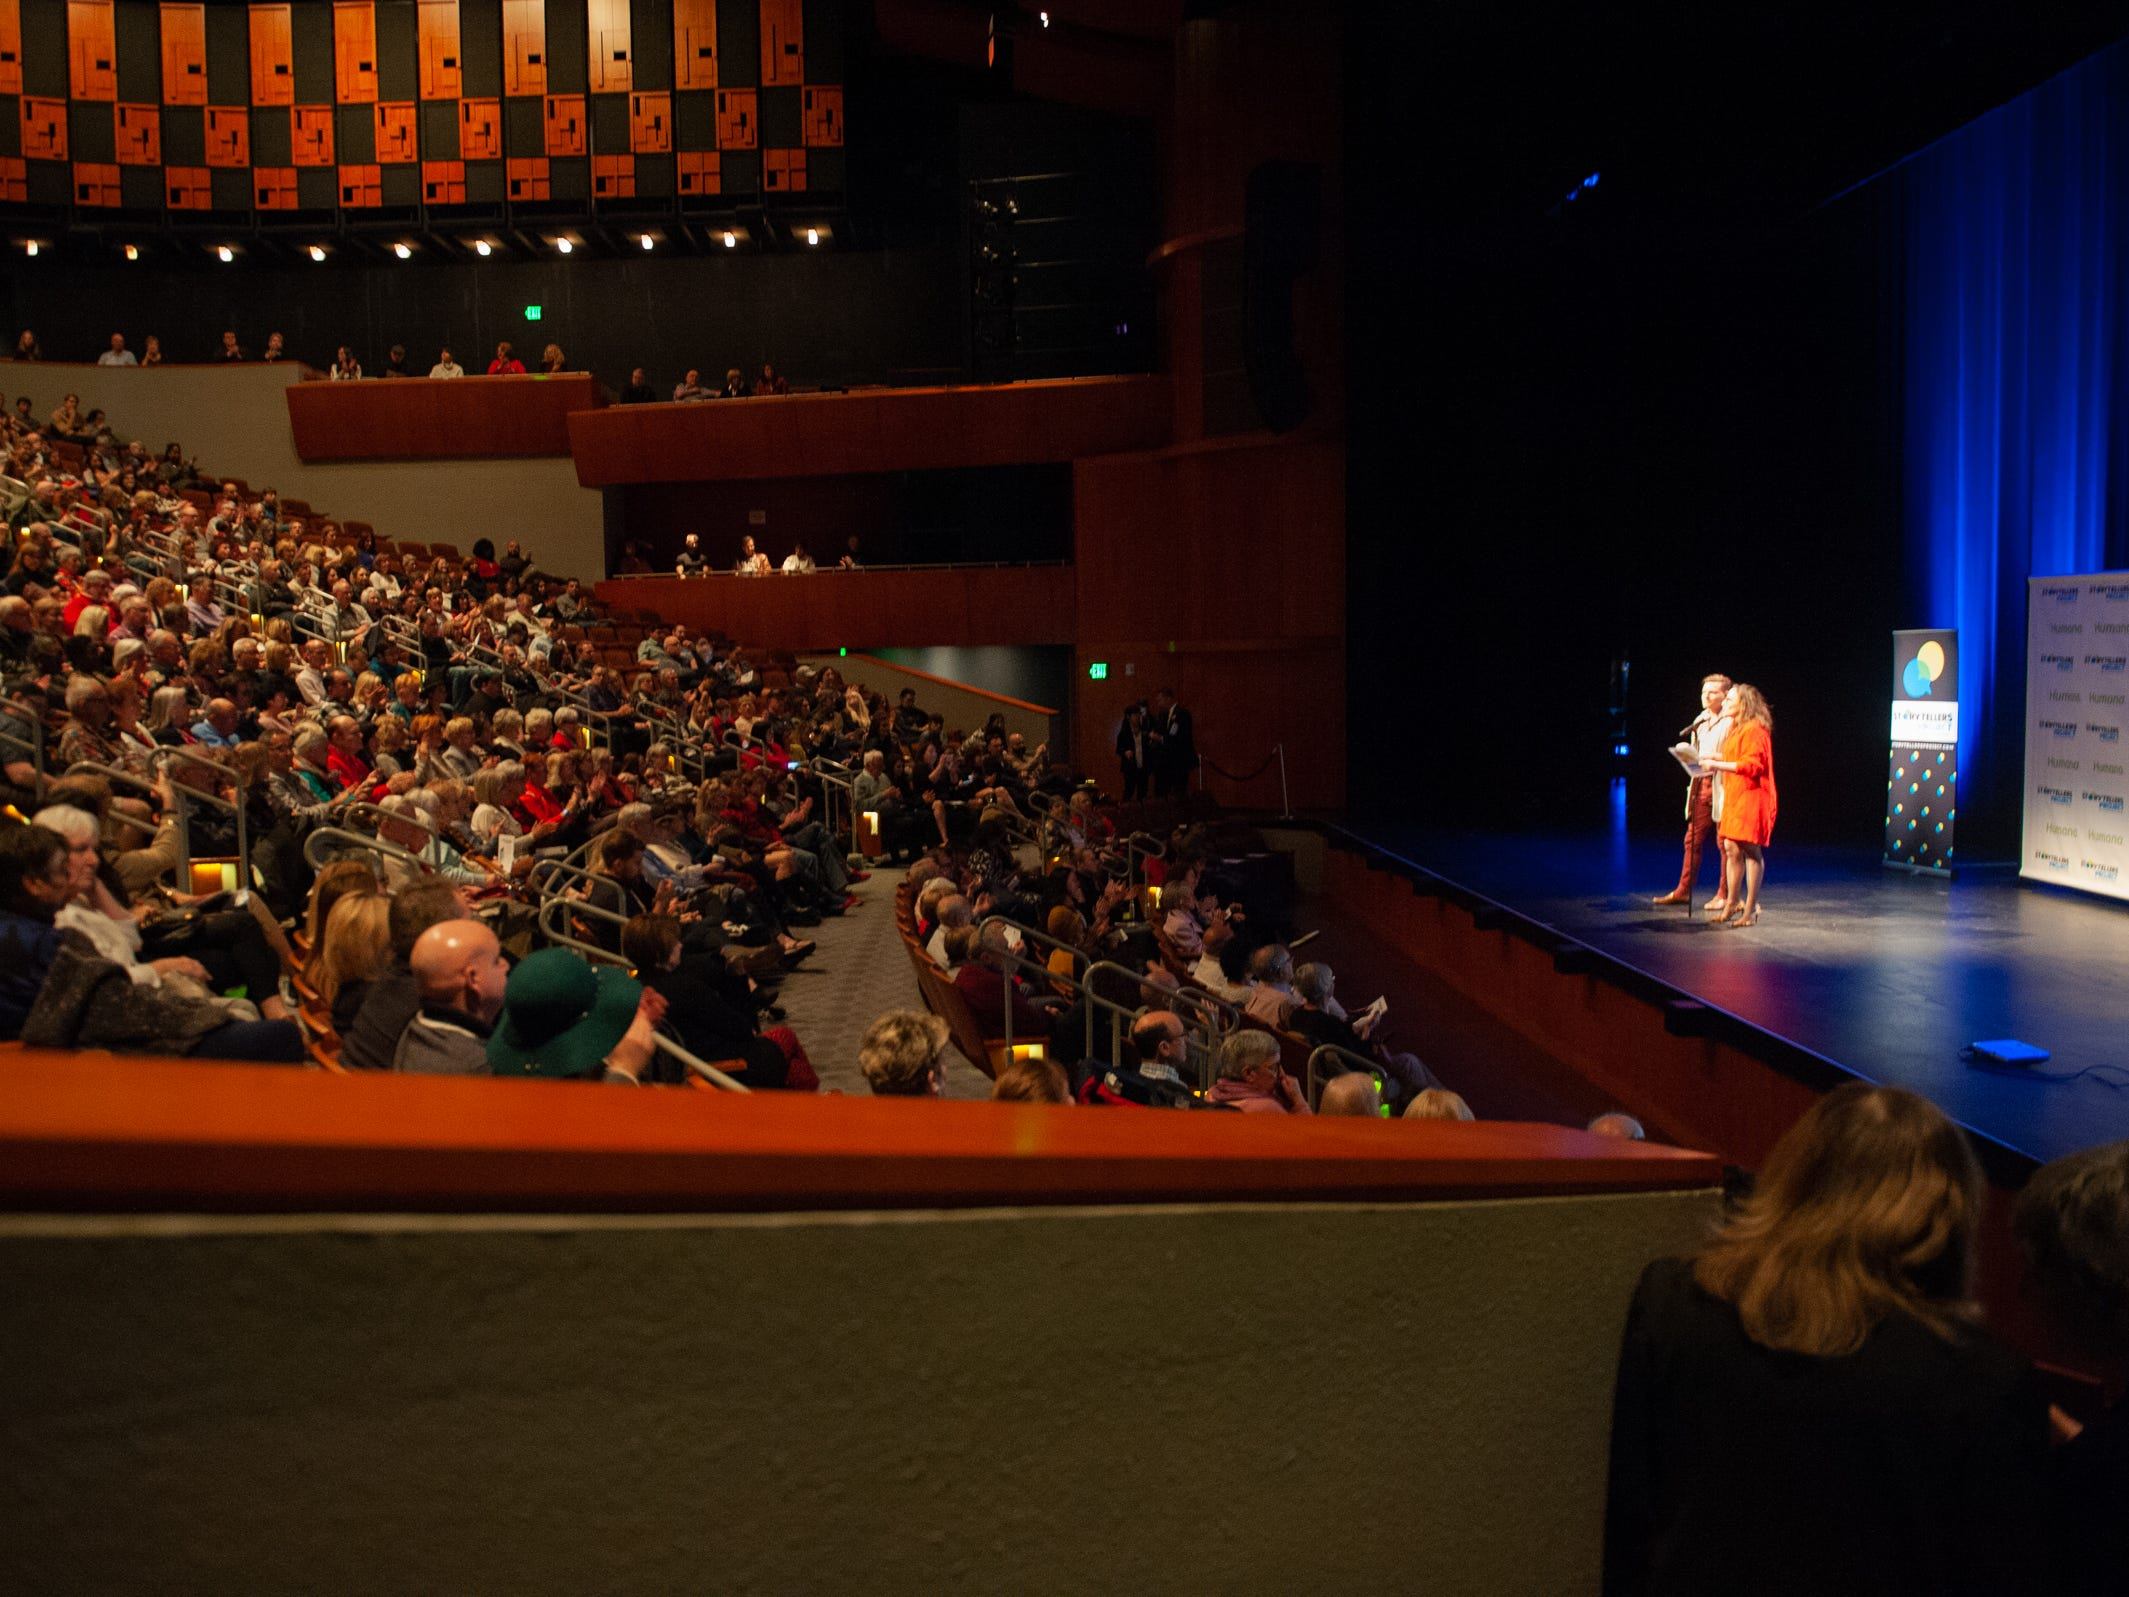 """Co-Hosts Garrett Mitchell and Megan Finnerty warm  up the crowd and announce the next storyteller during """"Arizona Storytellers: Romance or Not"""" at the Scottsdale Center for Performing Arts on Wednesday, Feb. 13, 2019."""